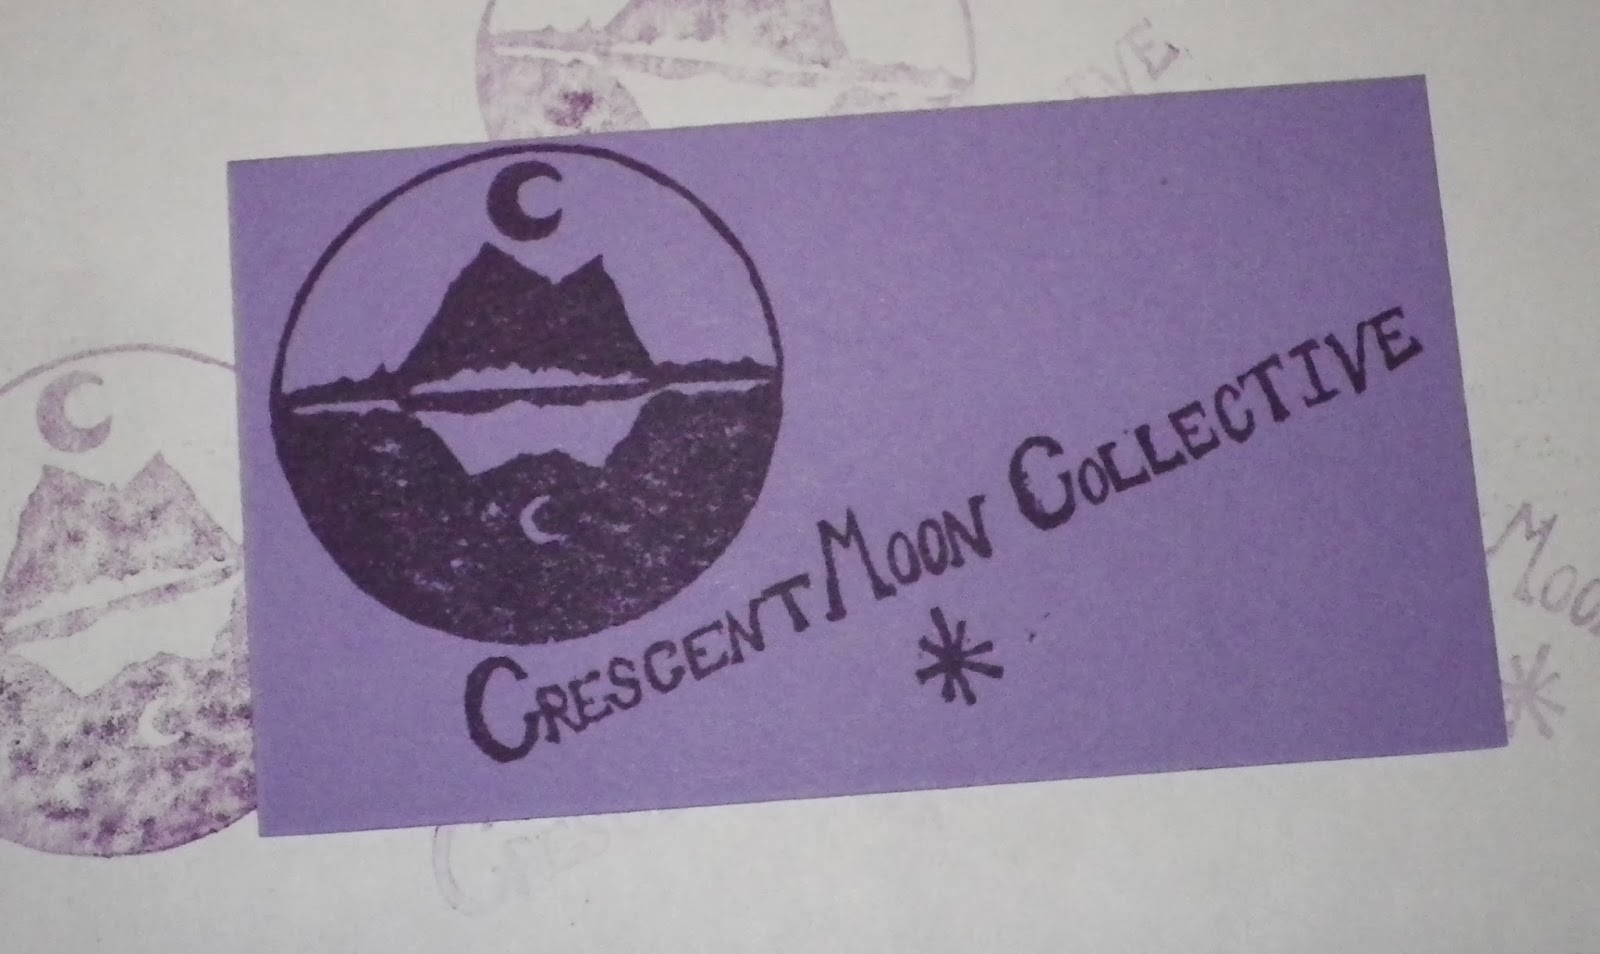 Crescent Moon Collective hand stamped purple business card